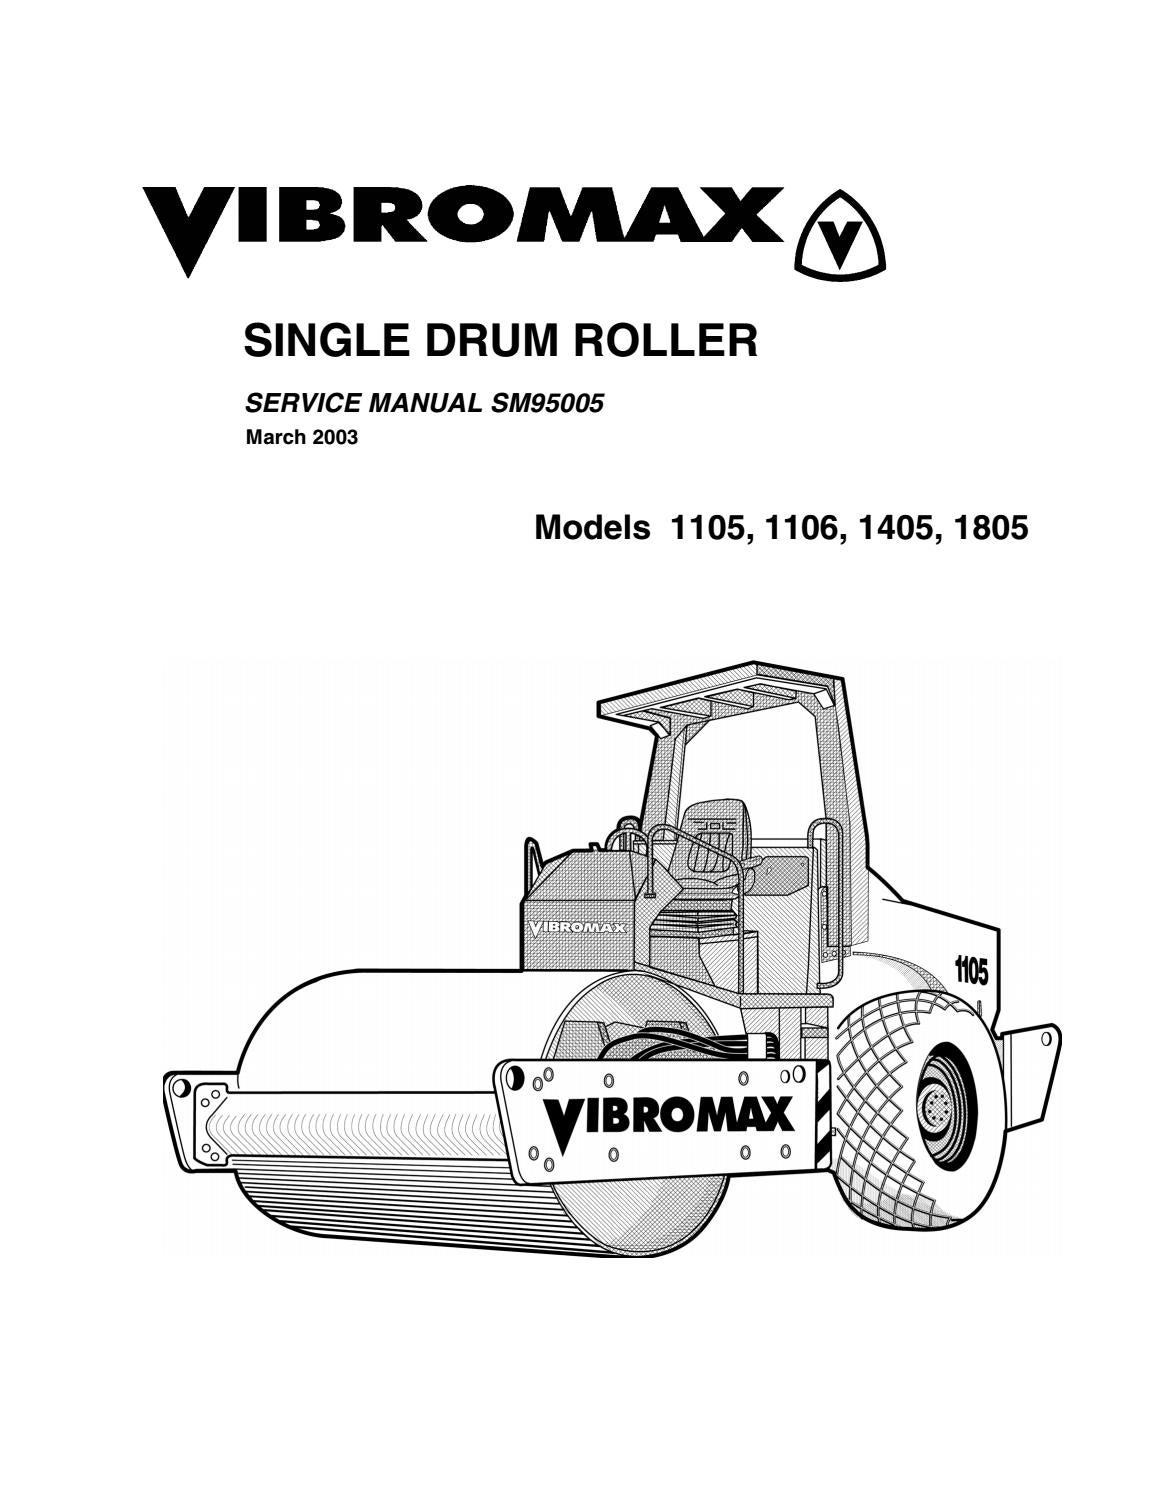 Jcb vibromax 1105 single drum roller service repair manual